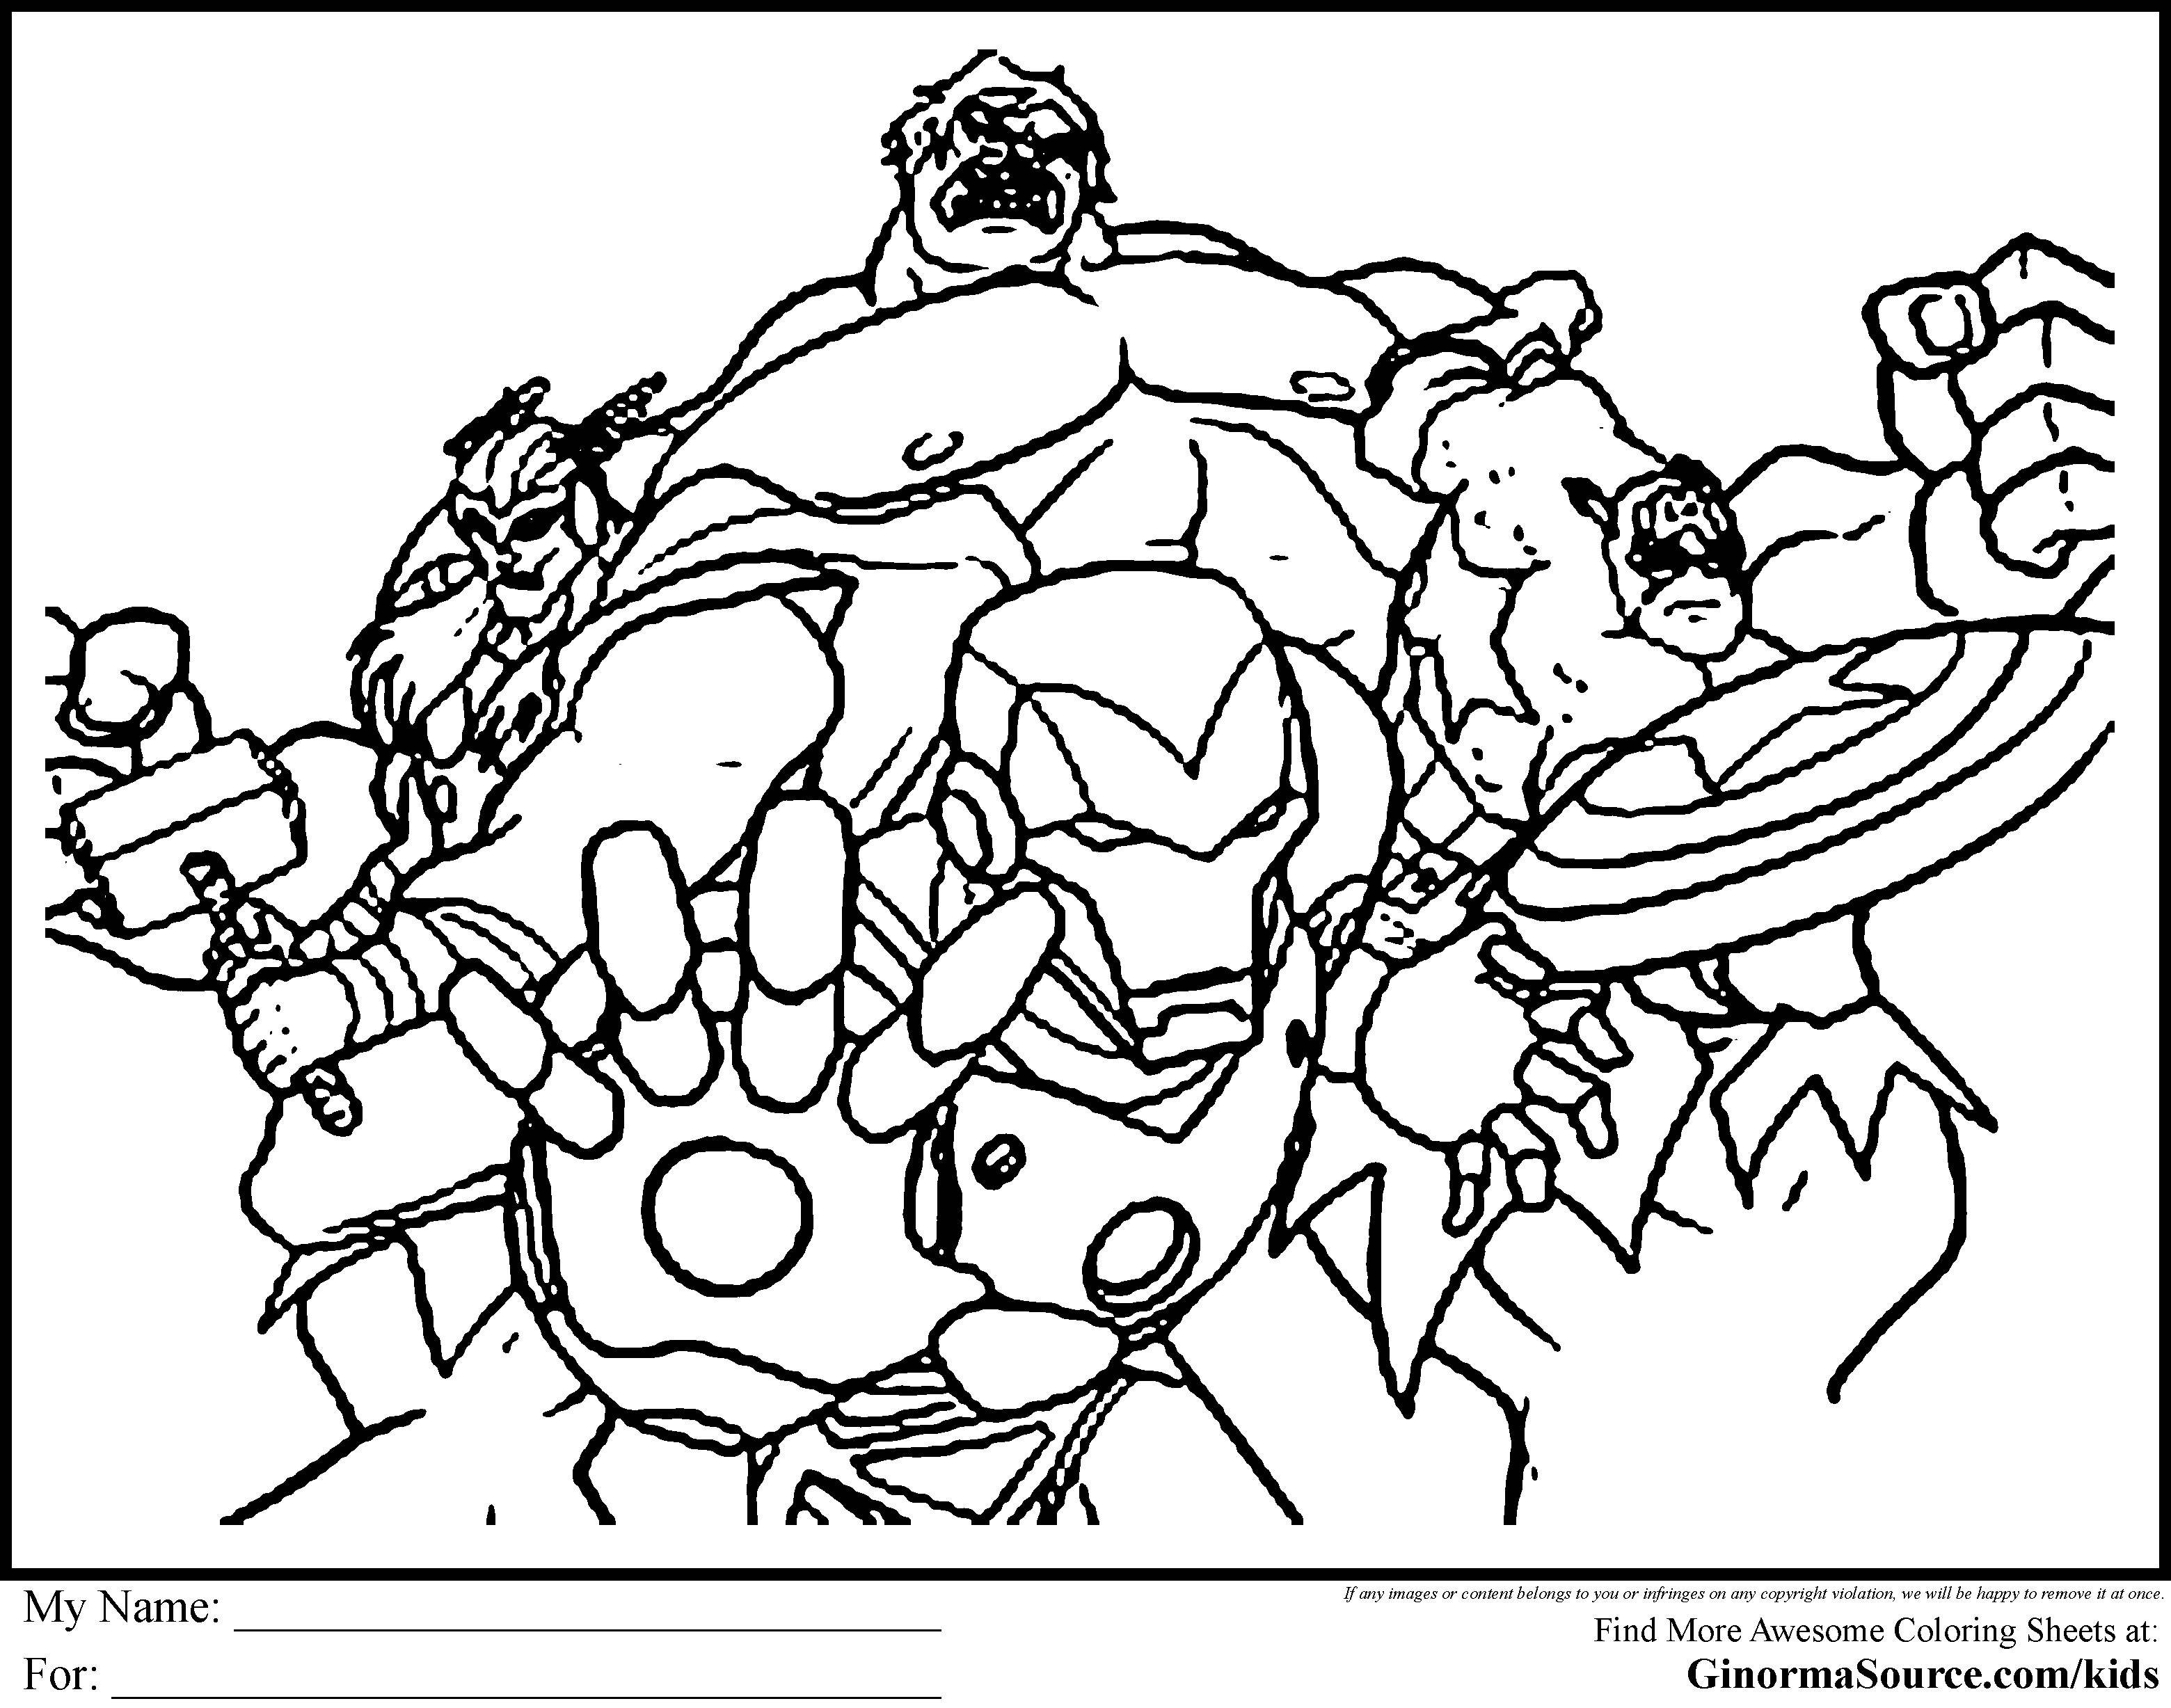 printable batman coloring pages - avengers coloring pages to print